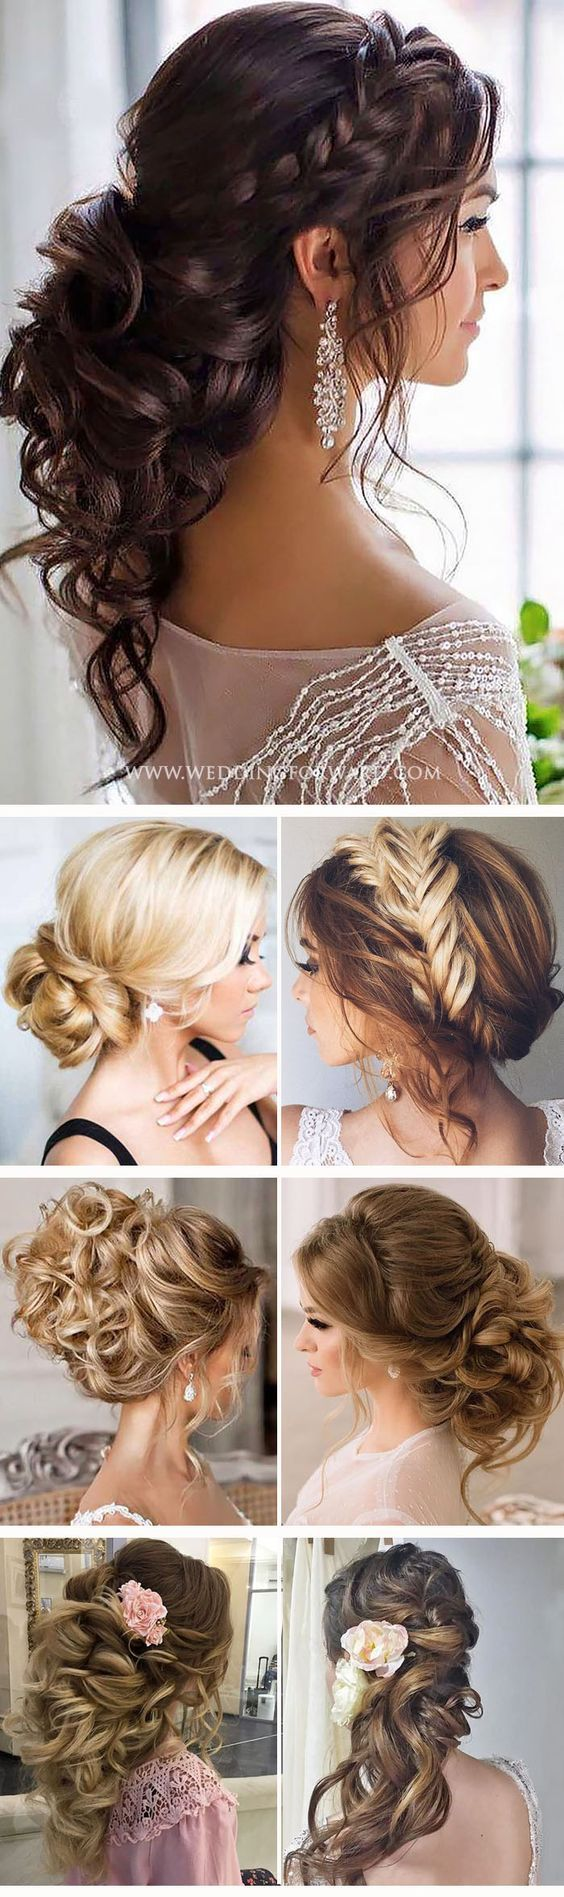 35 Romantic Wedding Hairstyles For Short Hair forecast